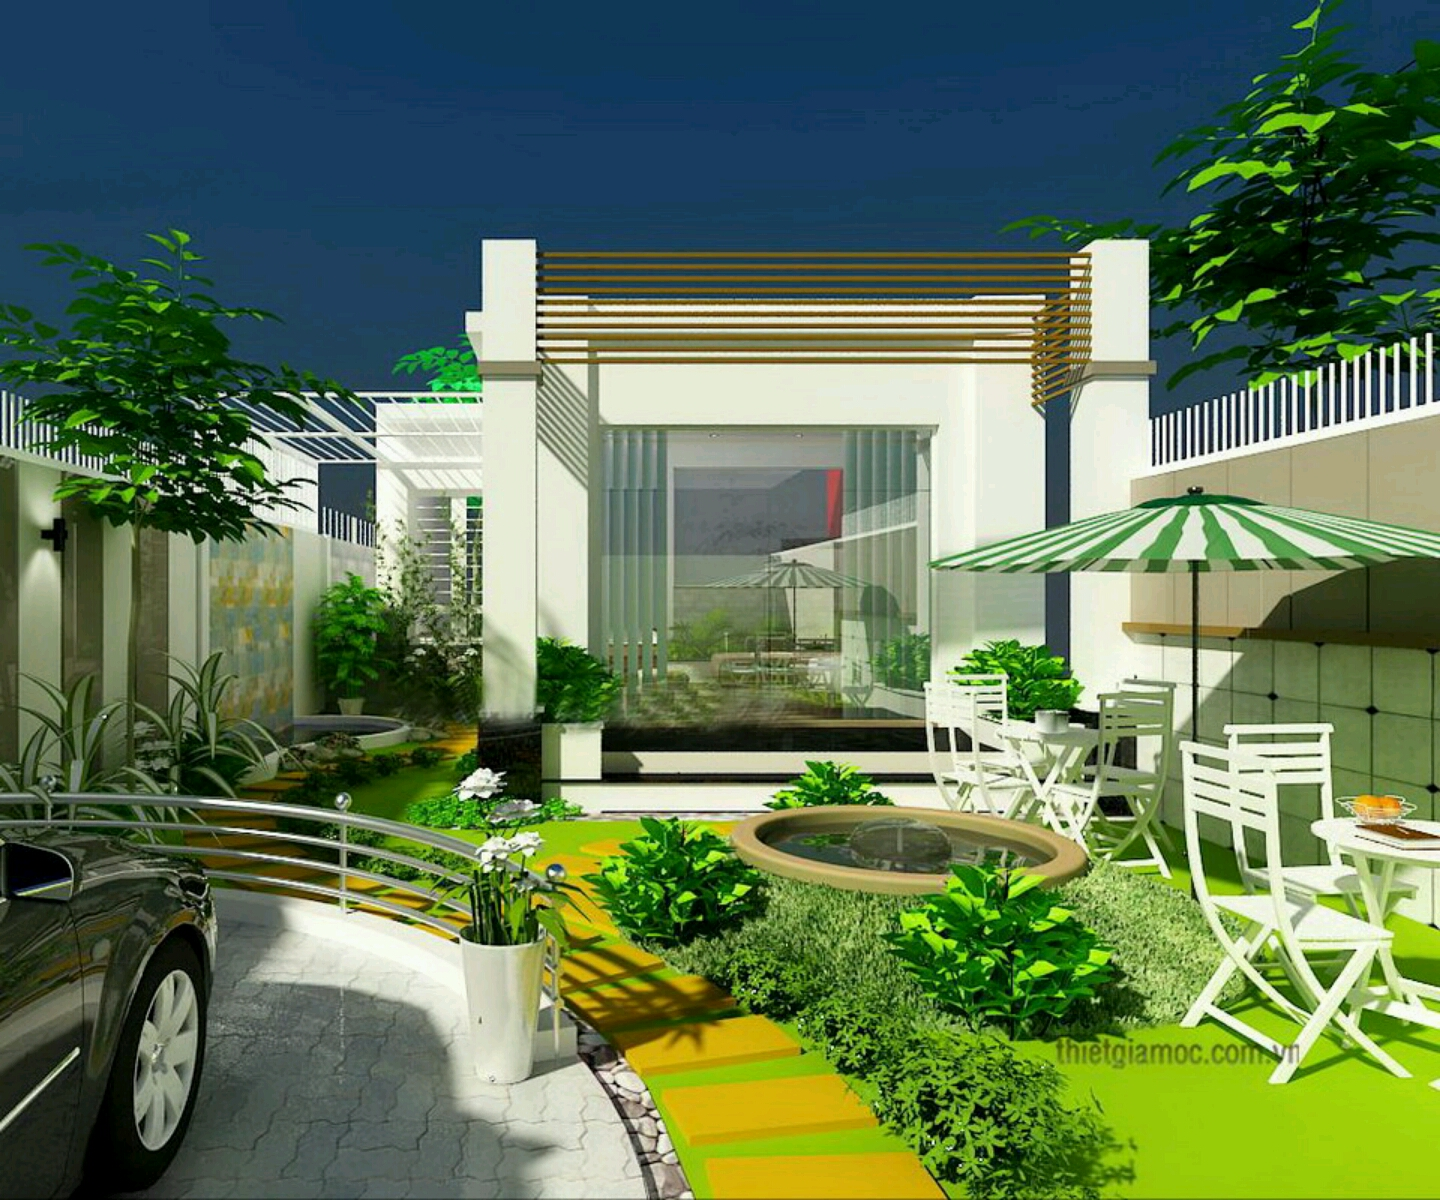 Modern homes beautiful garden designs ideas. | New home ... on Home Backyard Ideas id=27868